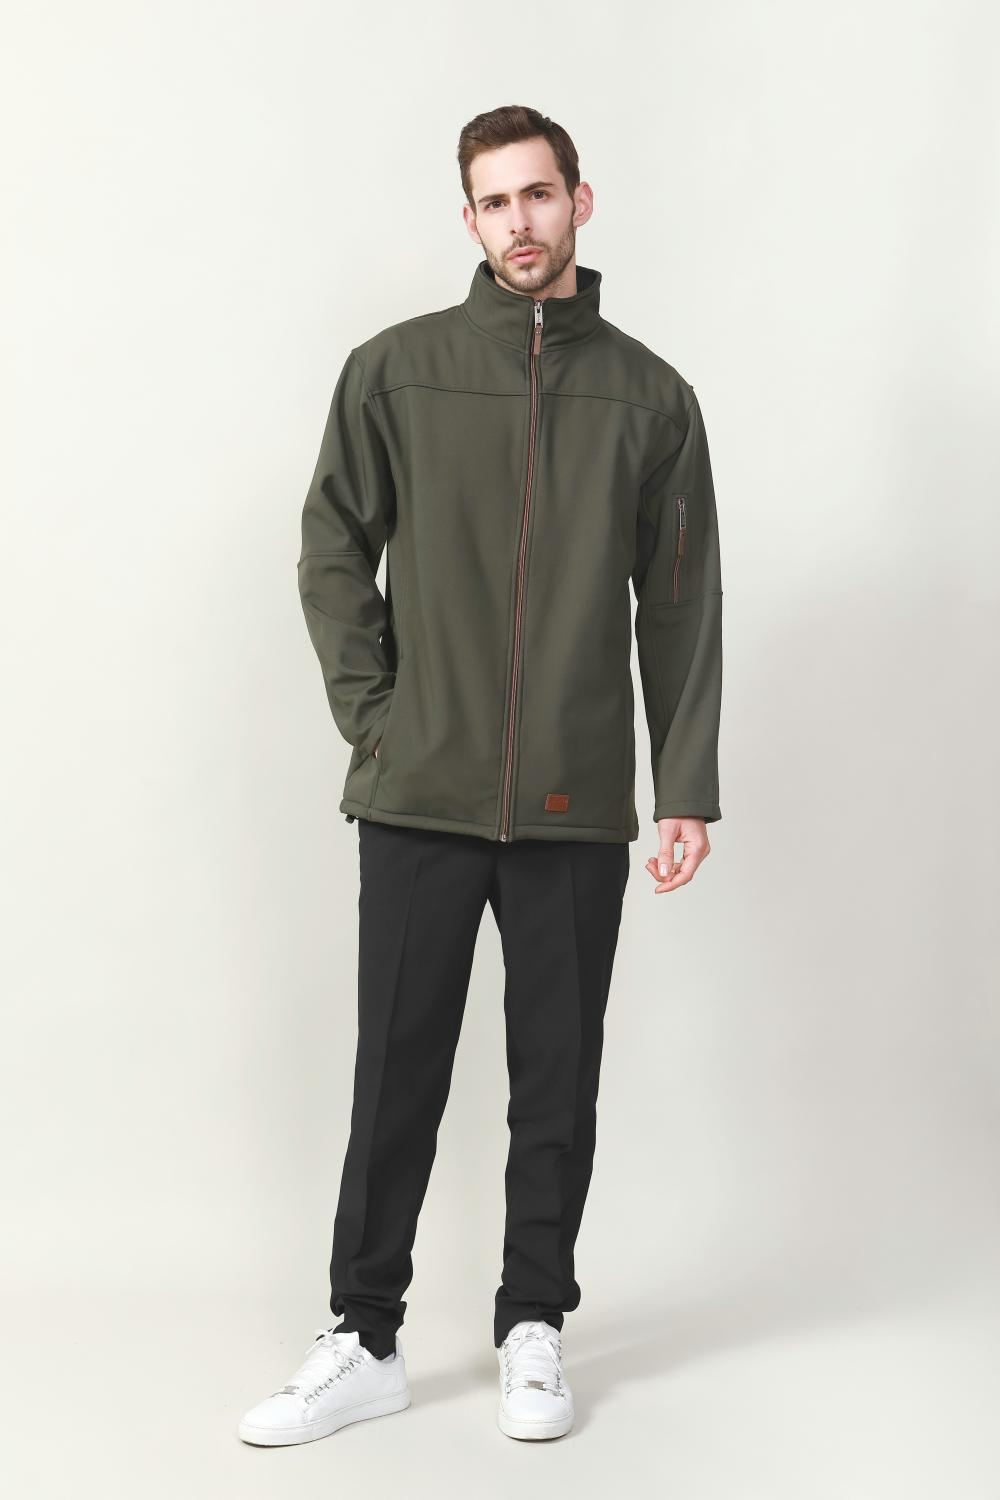 MEN'S SOFTSHELL JKT